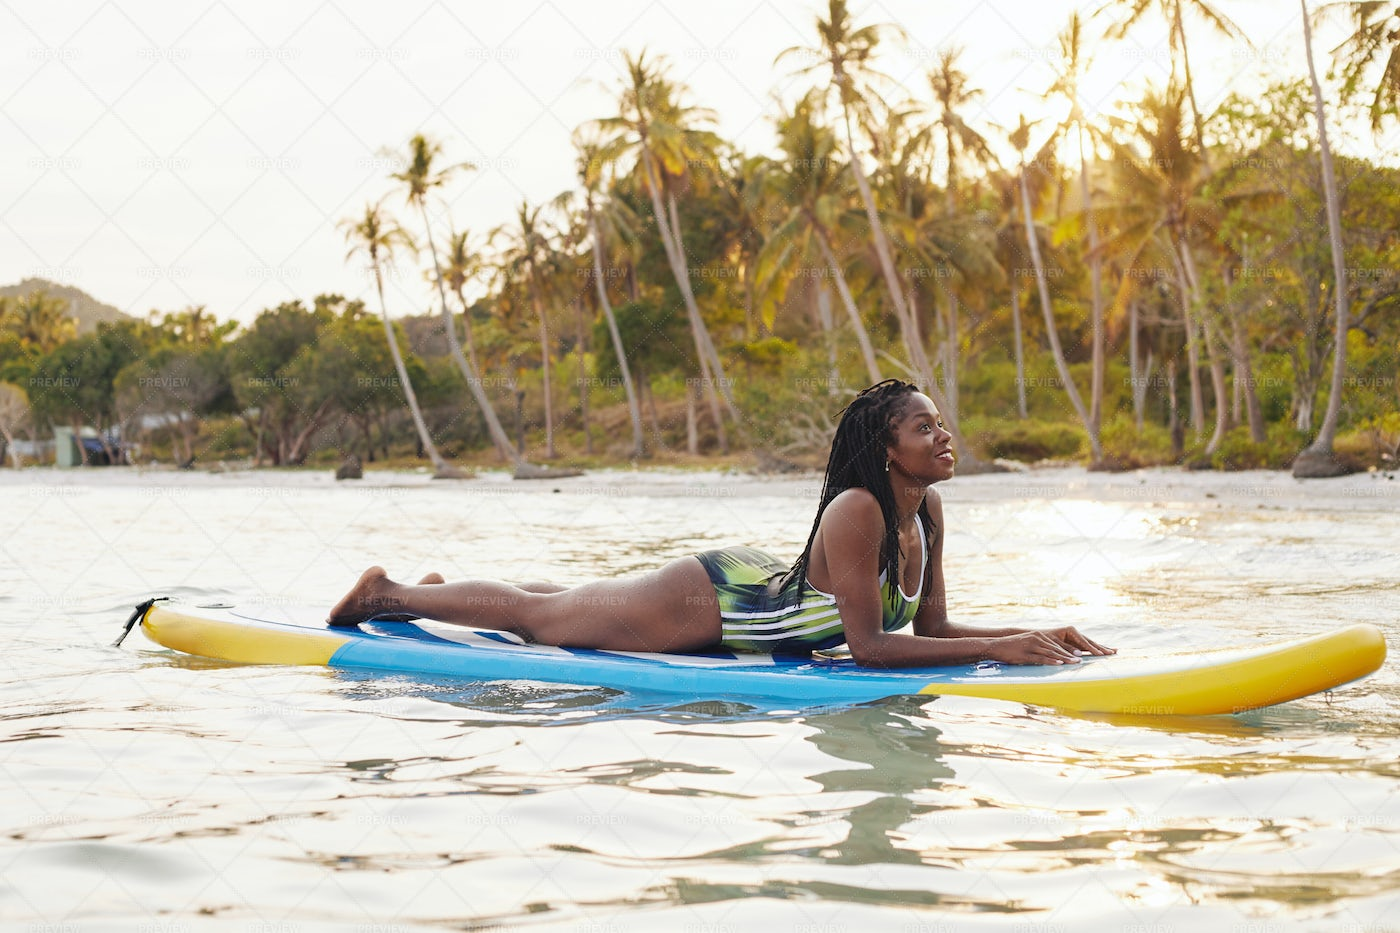 Woman Lying On Surfboard At The Sea: Stock Photos